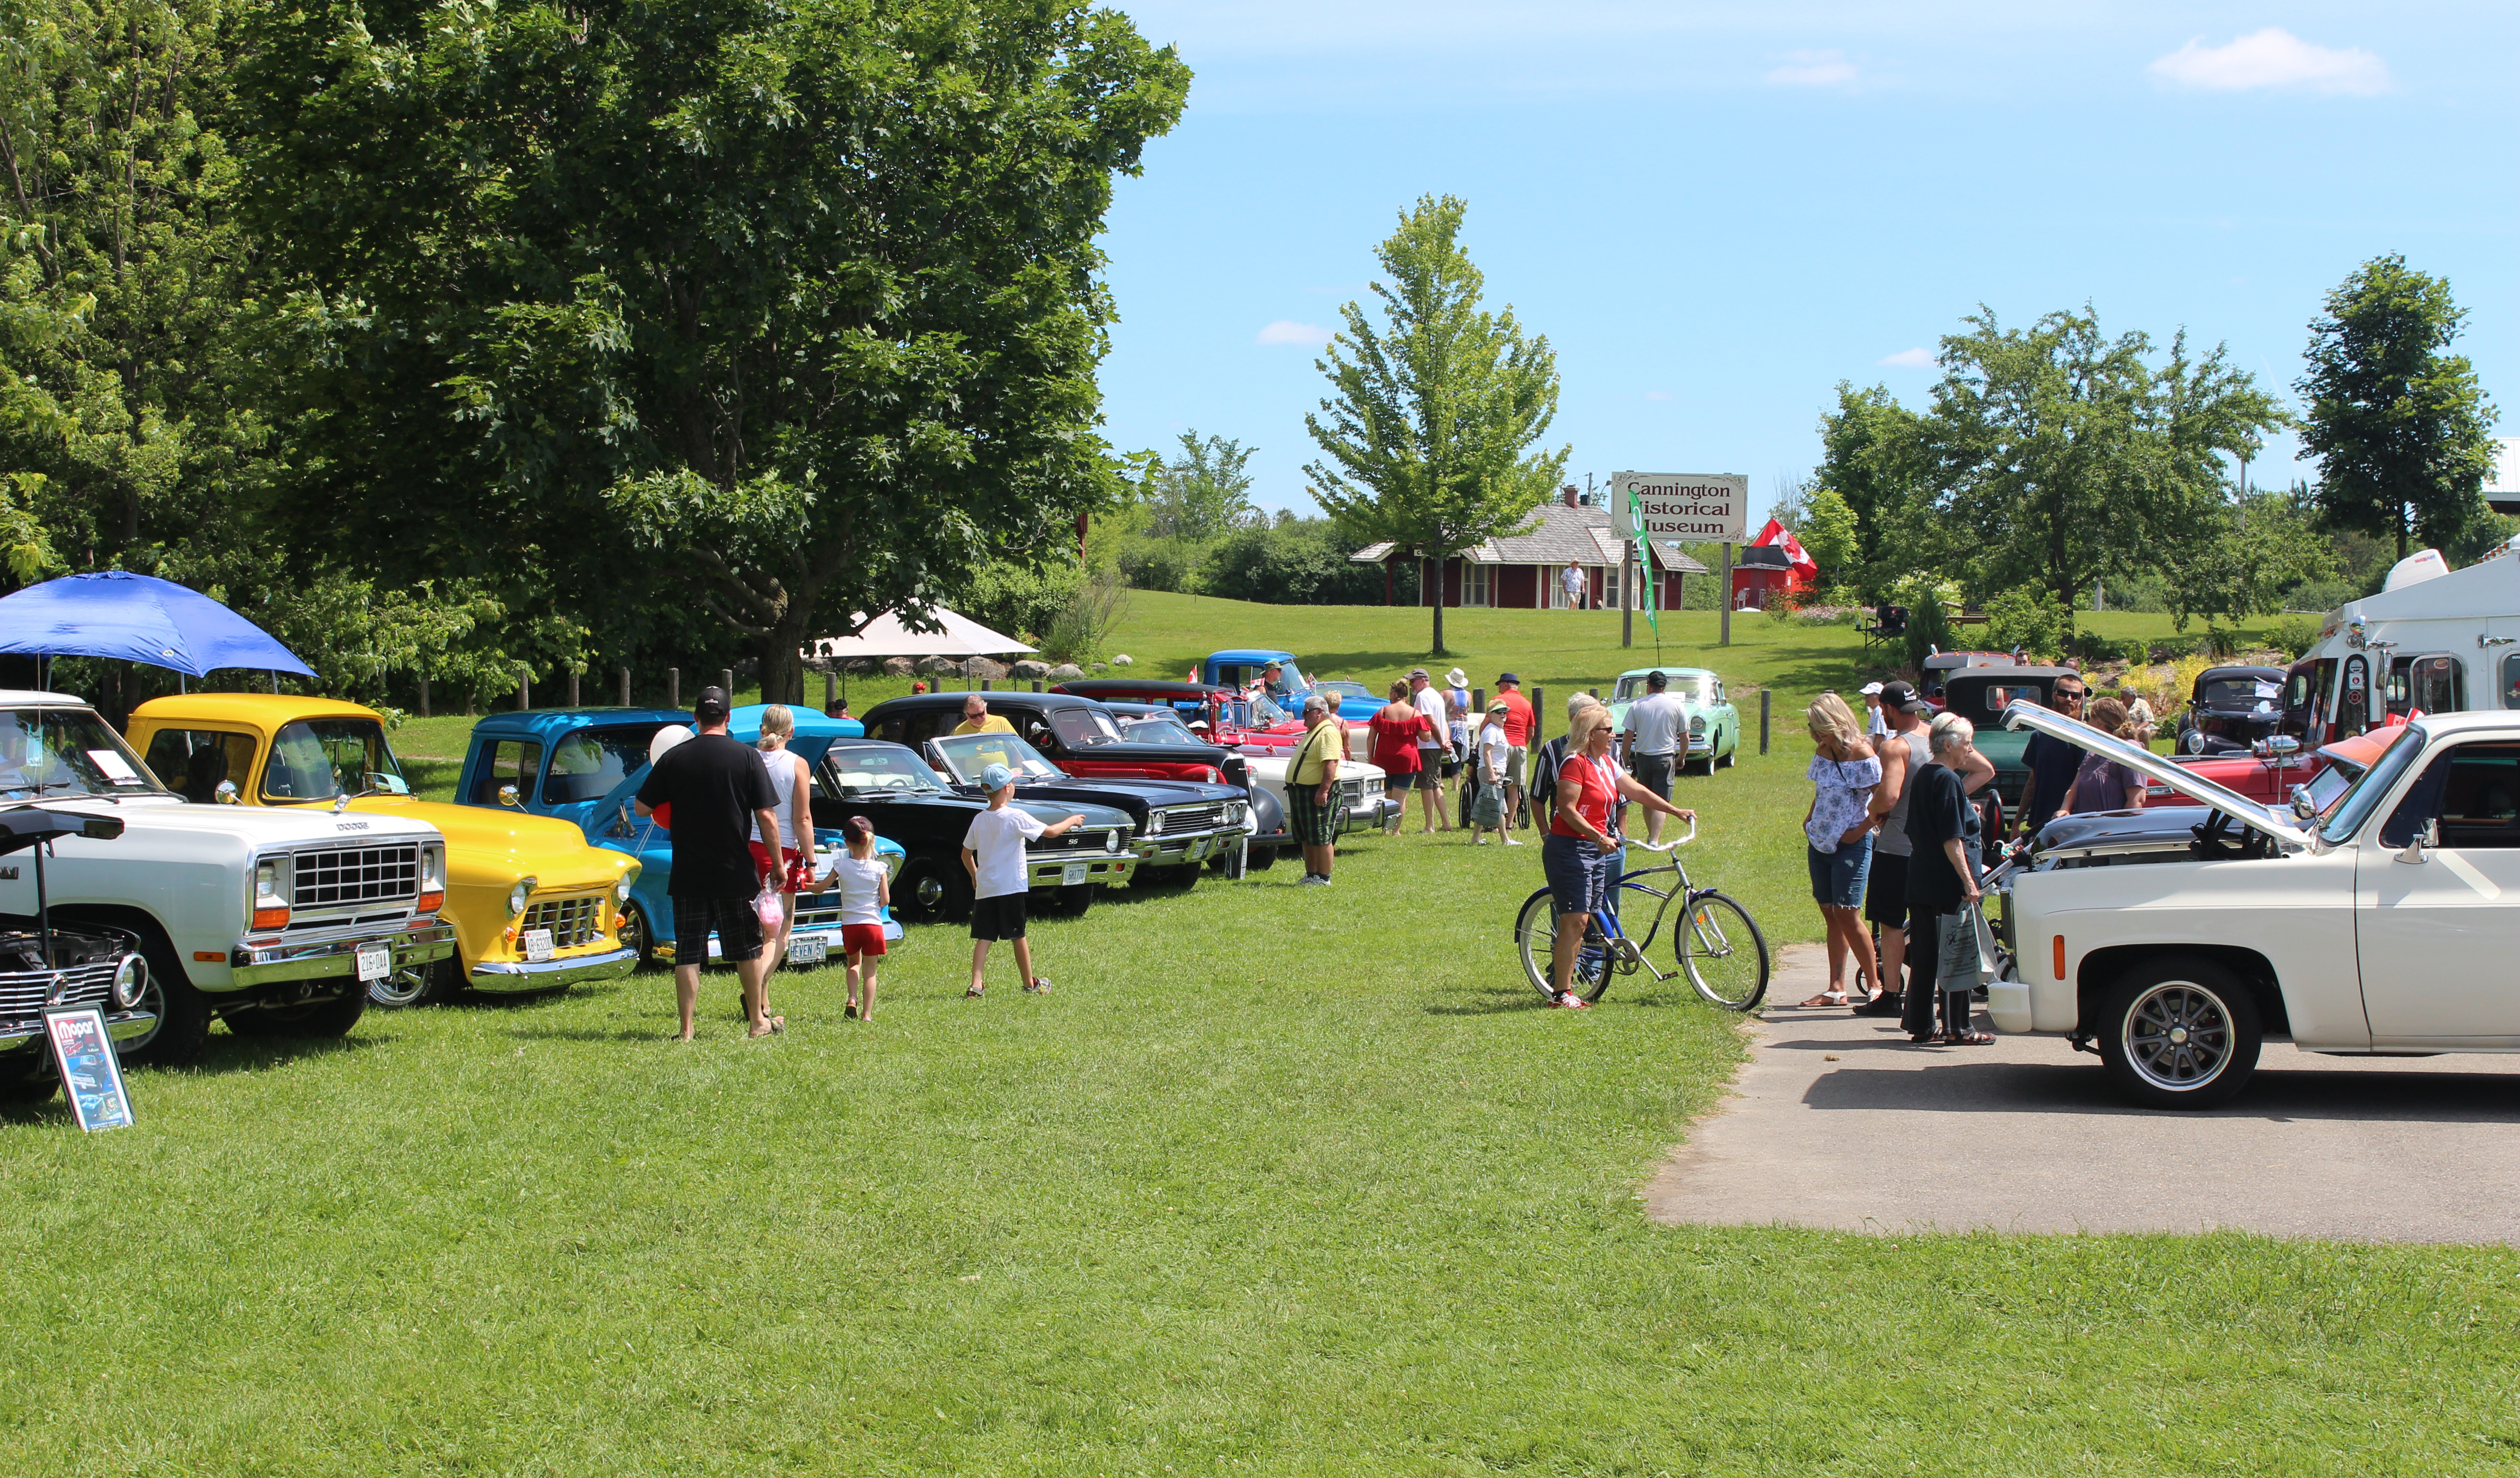 Canada Day celebrations cancelled in Cannington this year